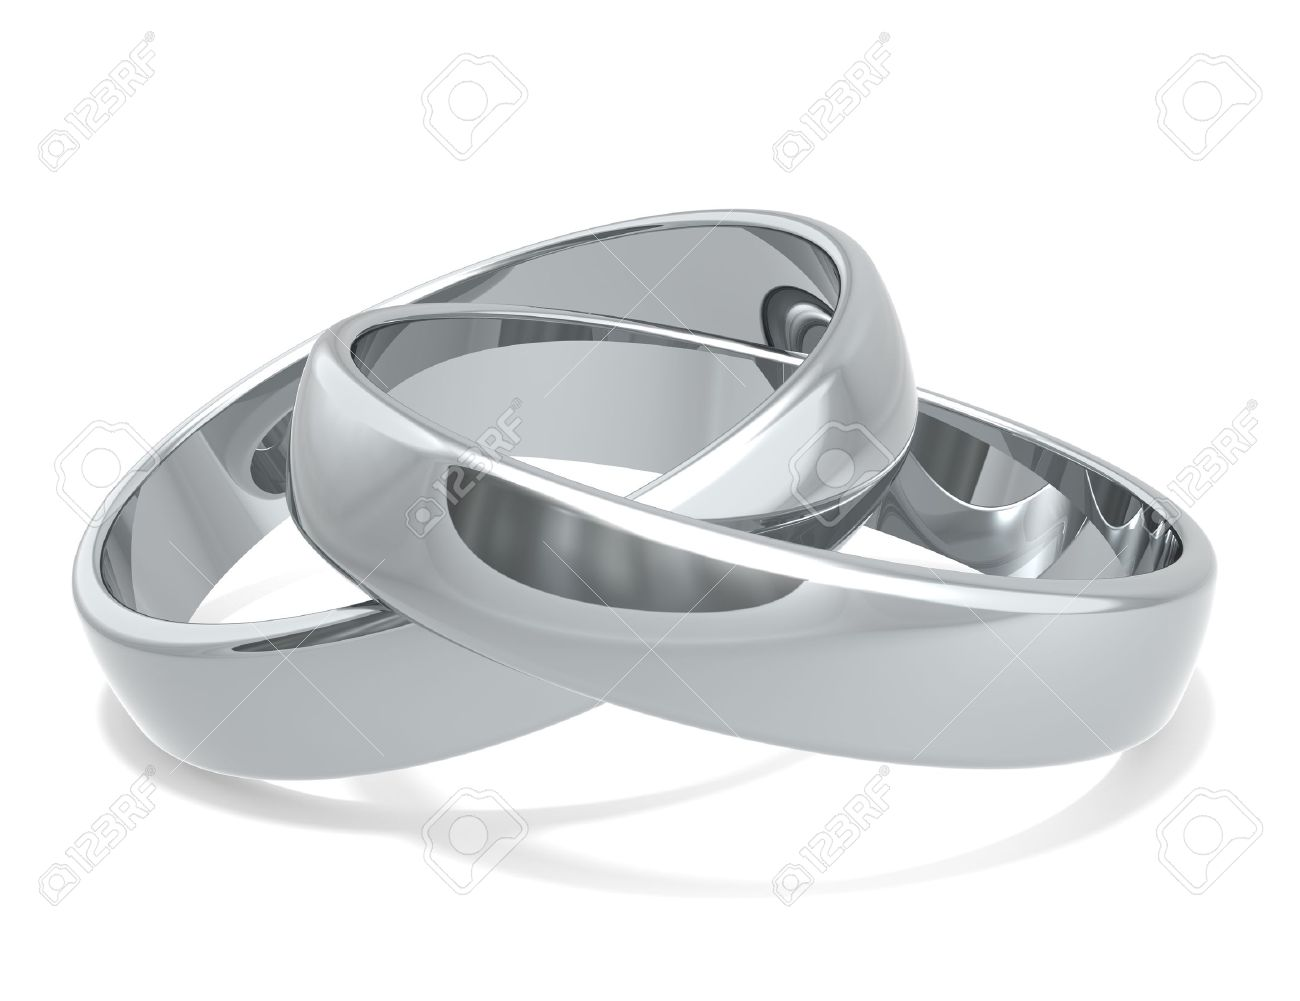 Wedding Rings Of Platinum X 2 Stock Photo Picture And Royalty Free